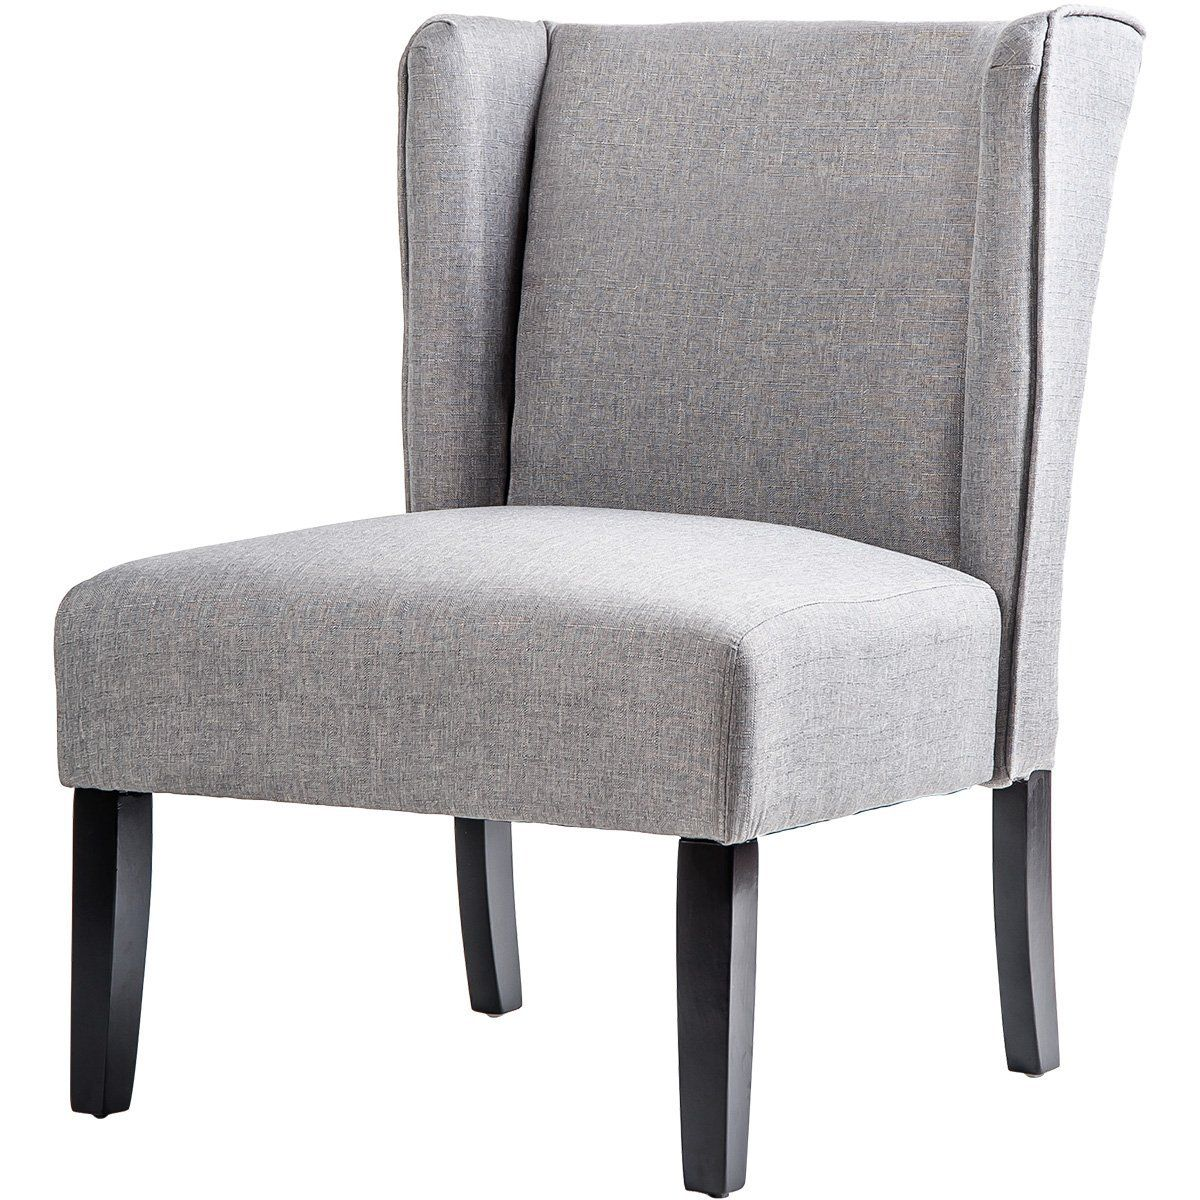 white gray solid wood office. Amazon.com: Merax Stylish Contemporary Upholstered Wingback Accent Chair With Solid Wood Legs ( White Gray Office